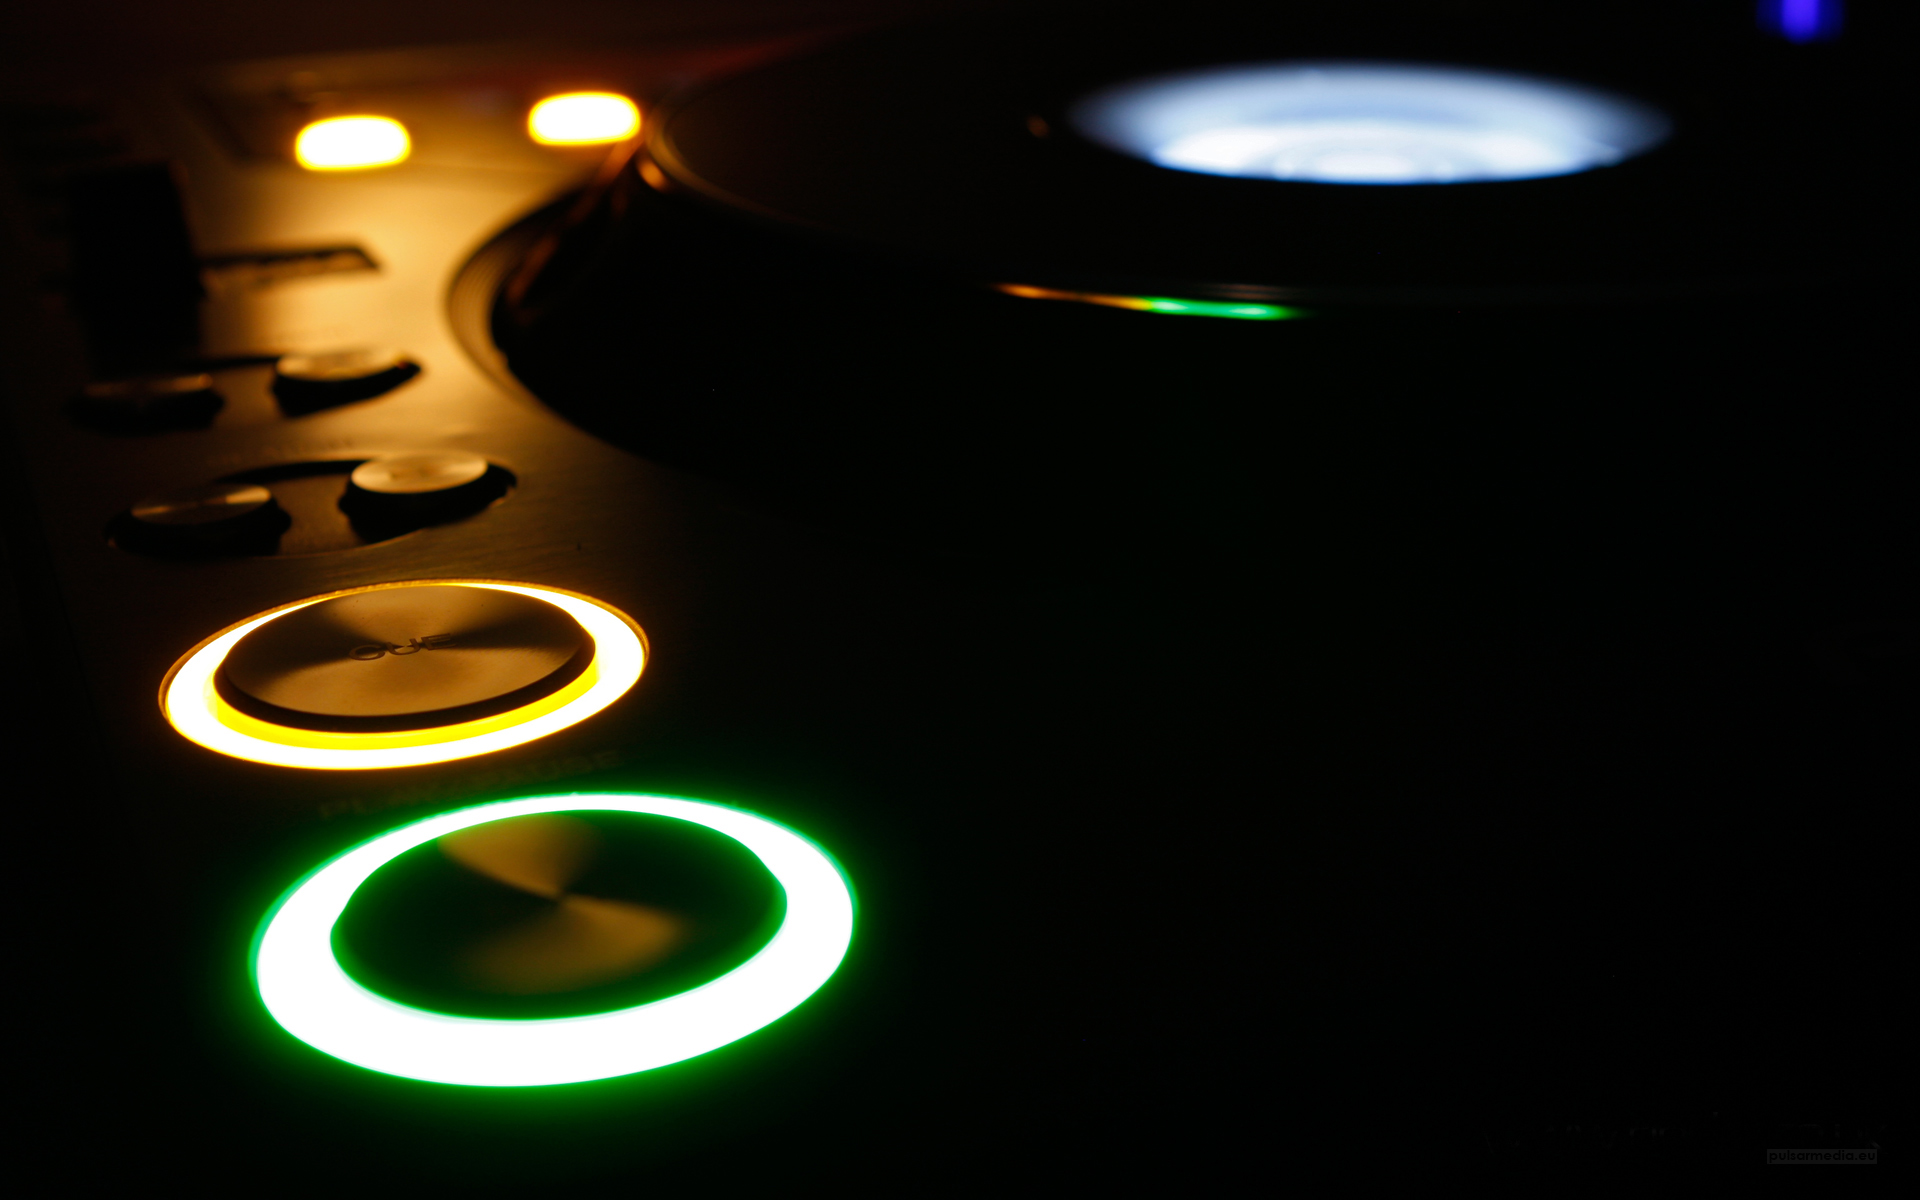 dj background wallpaper for computer - photo #40